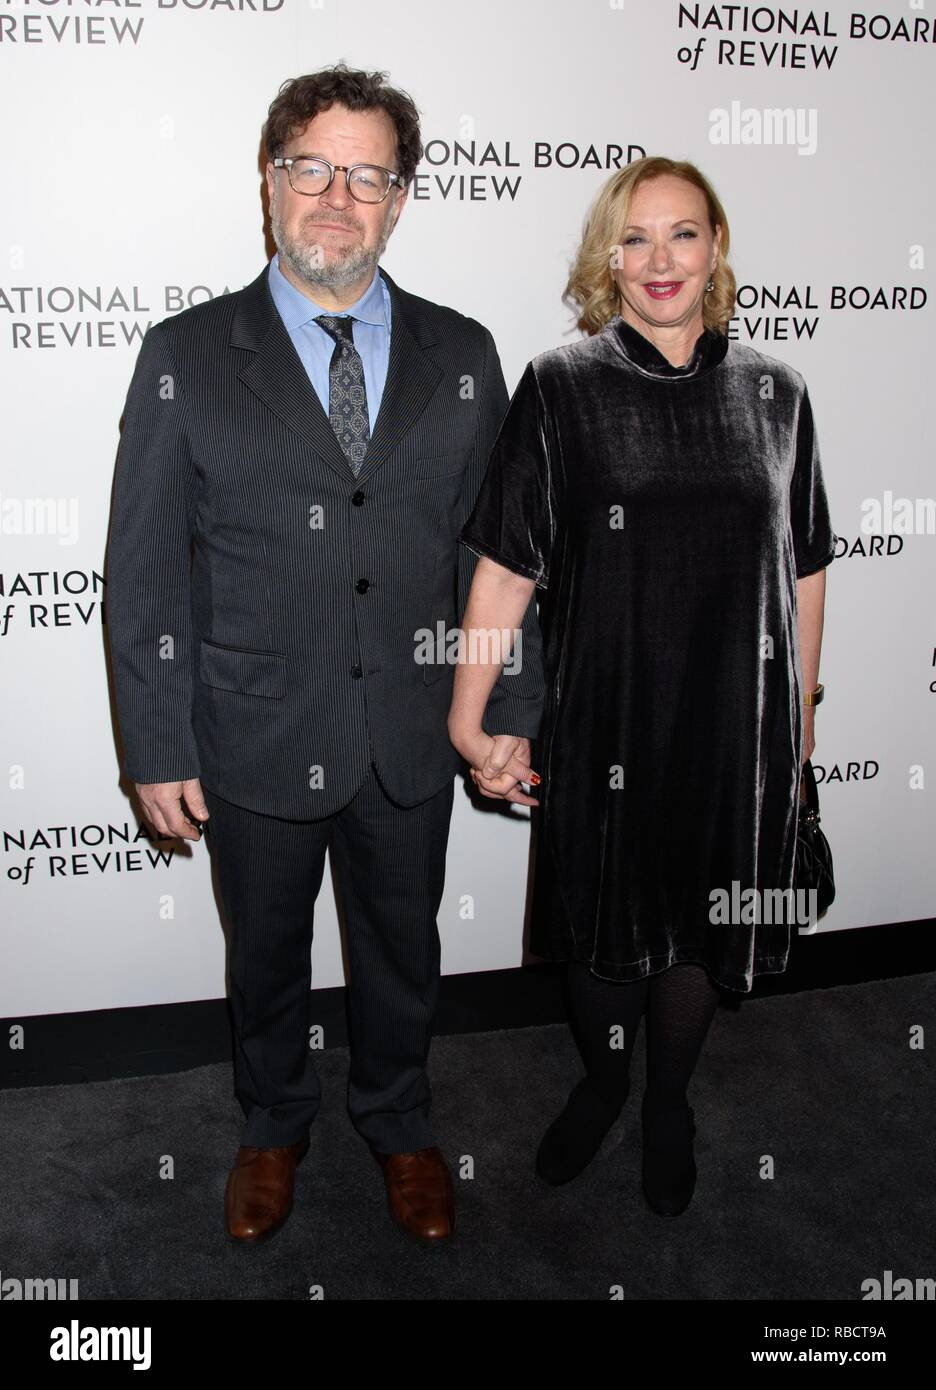 New York, NY, USA. 8th Jan, 2019. Kenneth Lonergan and J. Smith-Cameron at arrivals for National Board of Review (NBR) Awards Gala, Cipriani 42nd Street, New York, NY January 8, 2019. Credit: RCF/Everett Collection/Alamy Live News - Stock Image